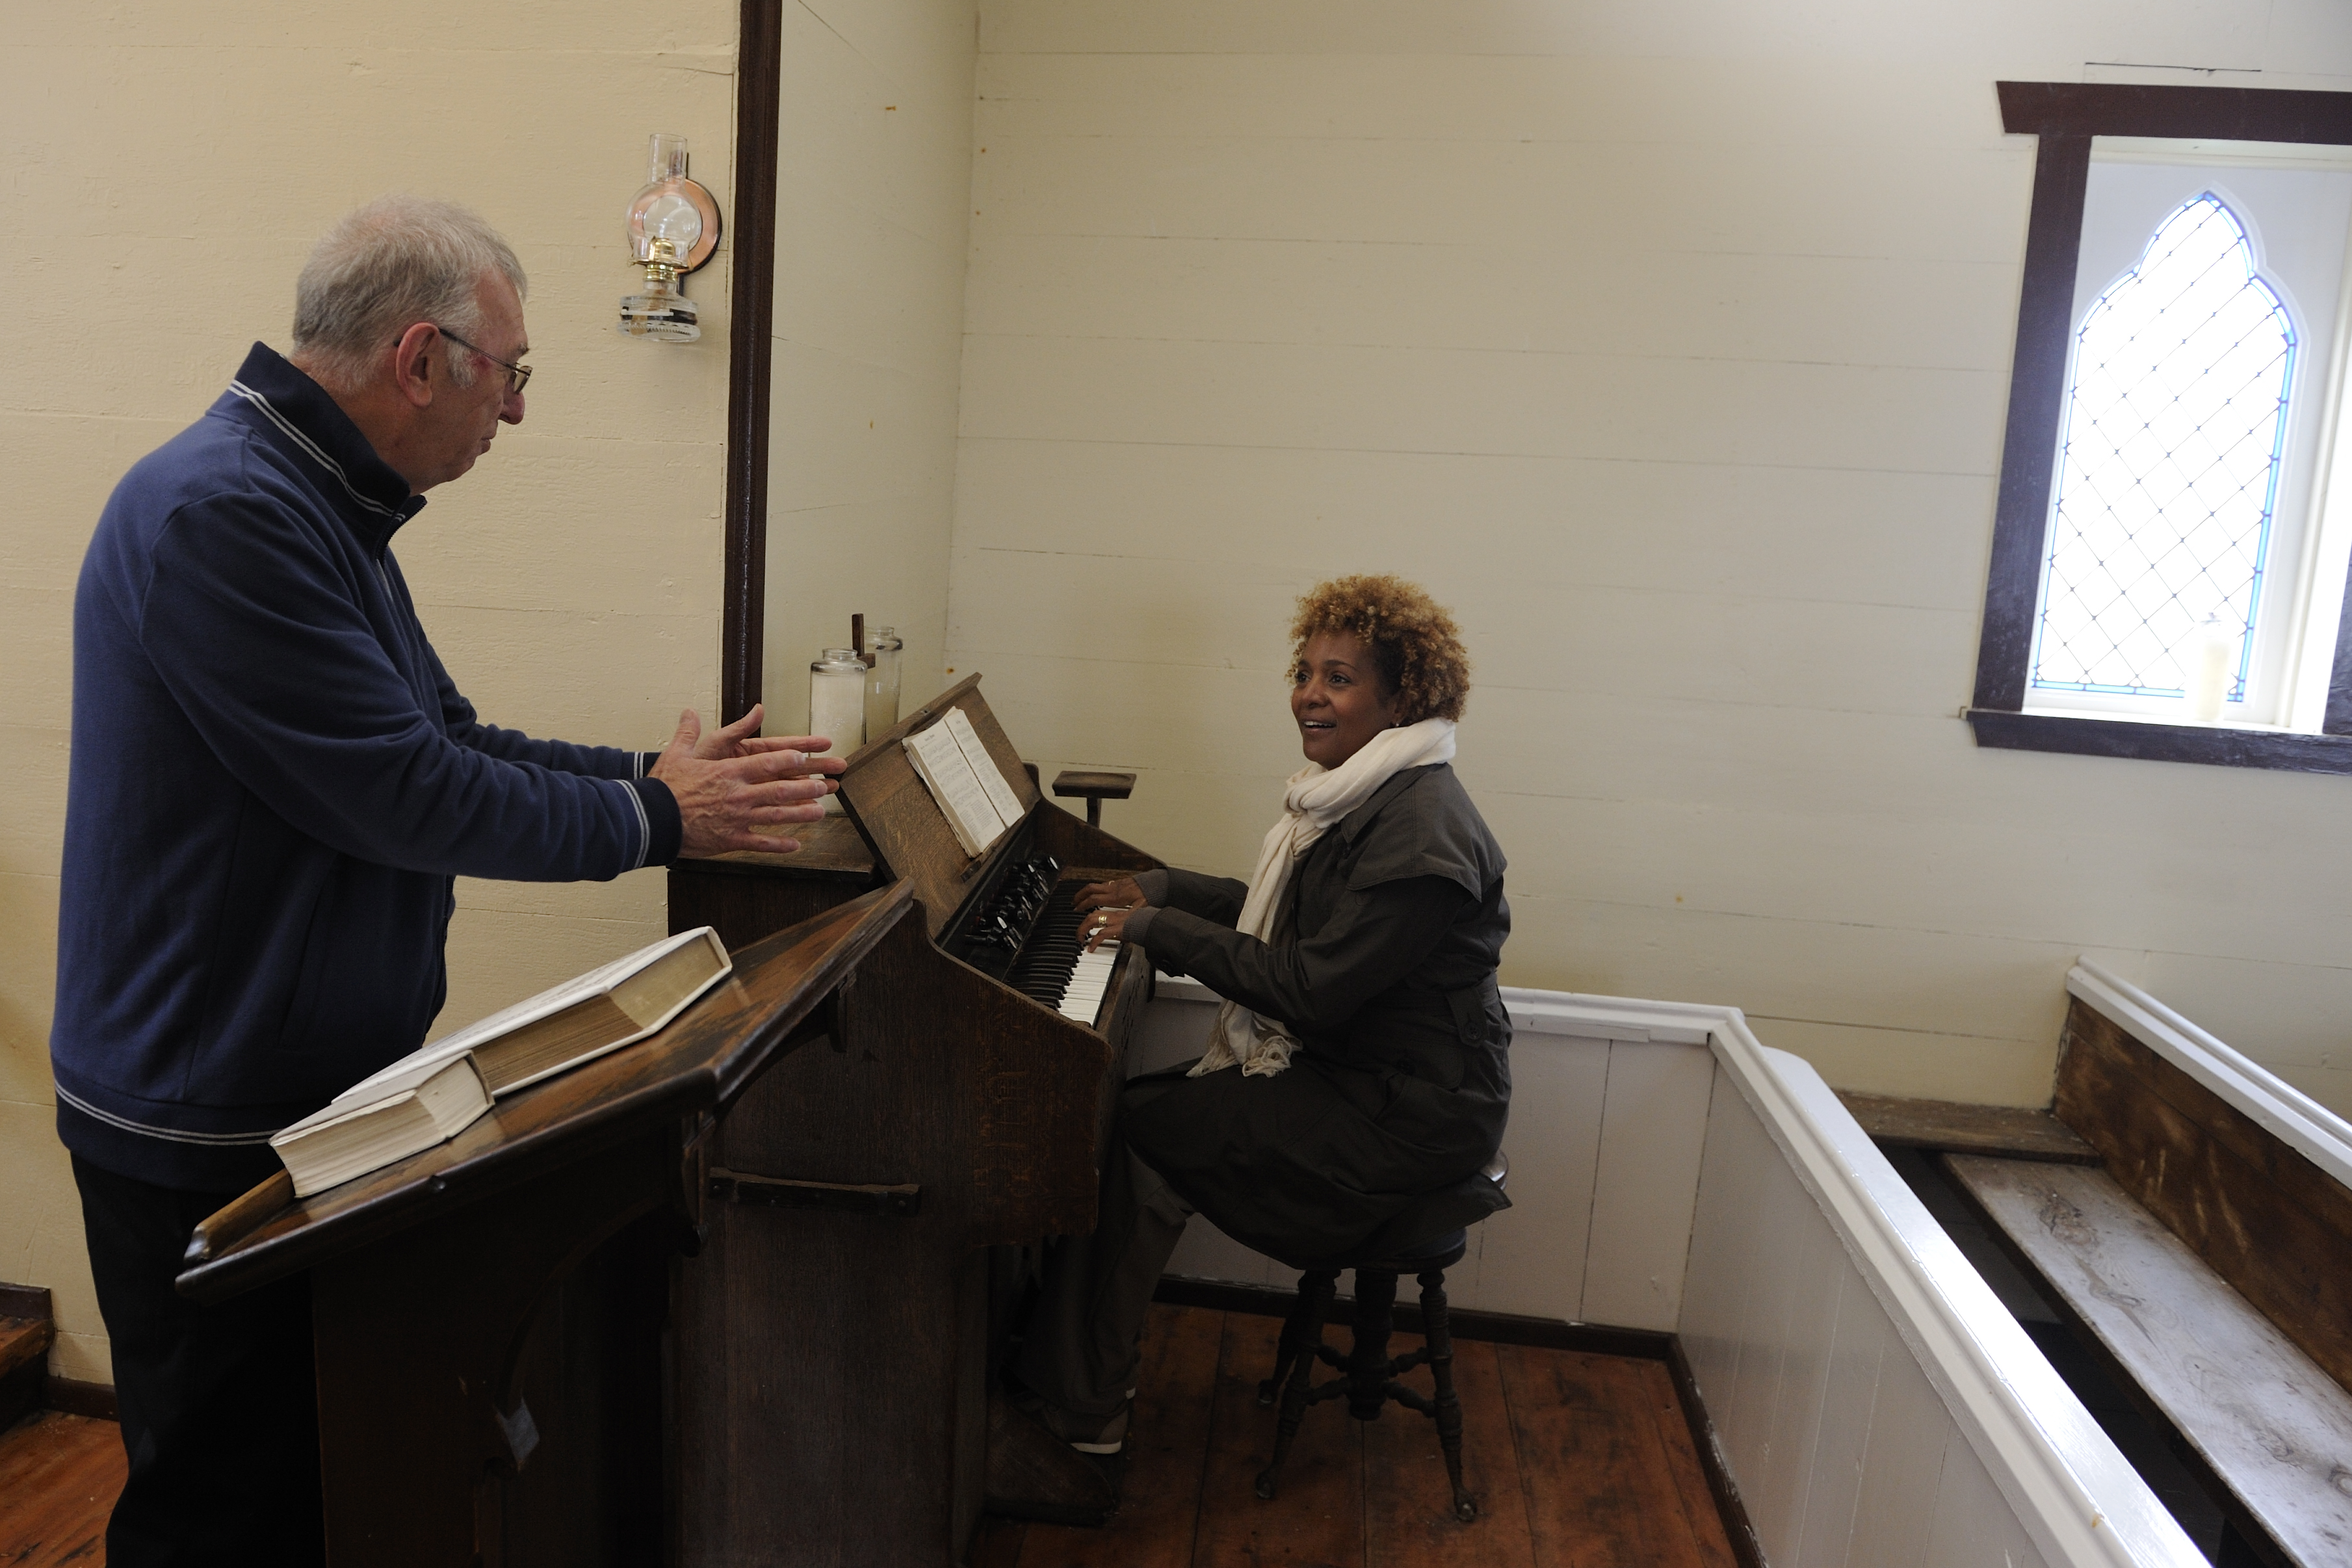 Her Excellency played a little music when she visited Battle Harbour's church.